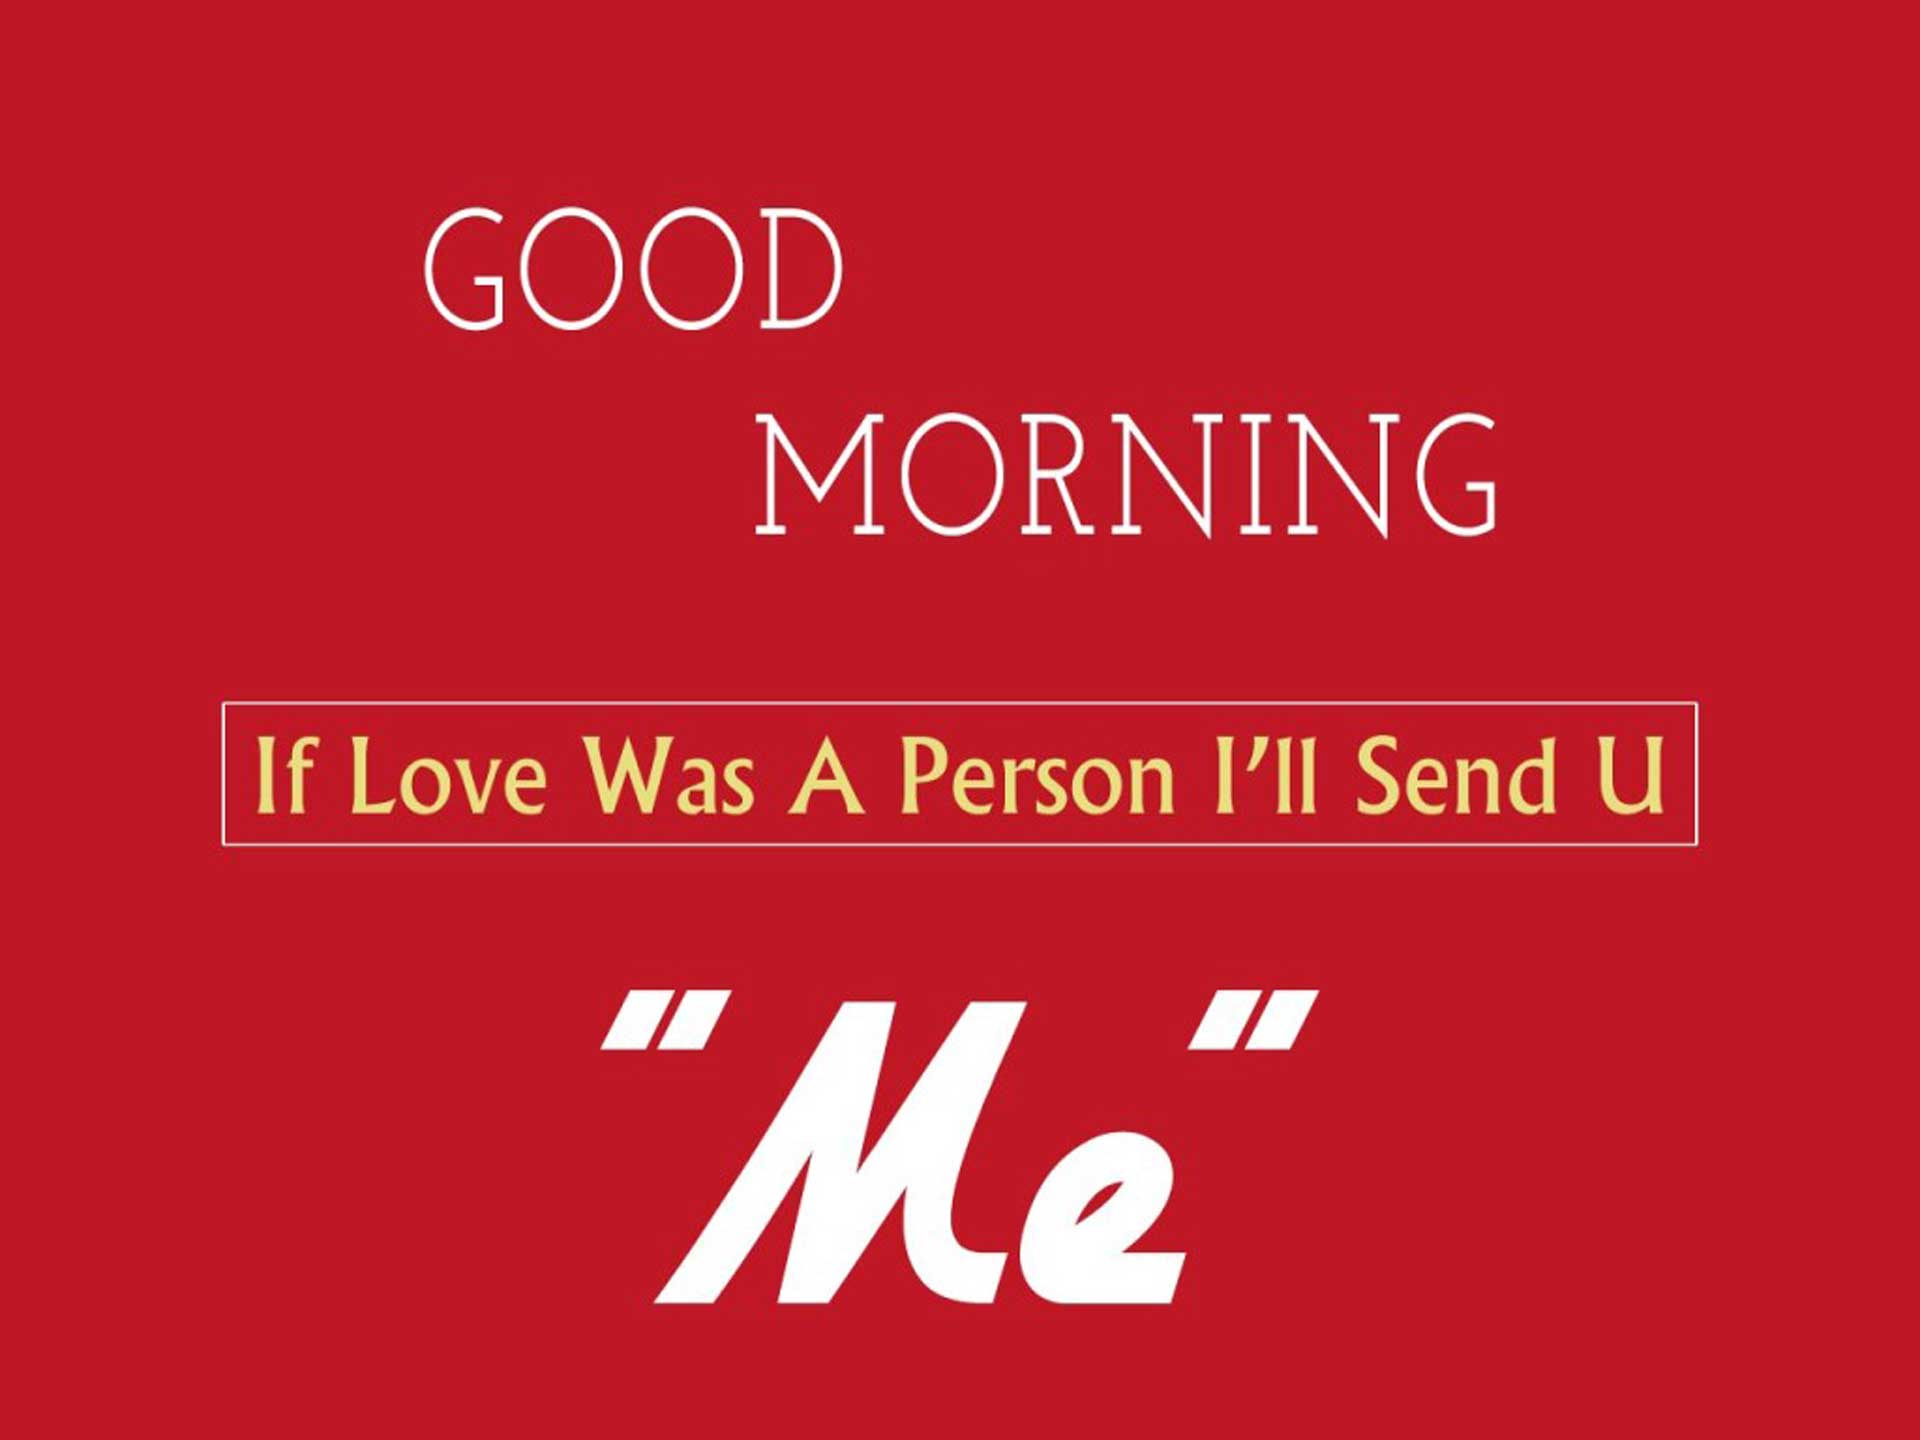 Good Morning Love Jpg : Inspirational good morning images for lover wishing